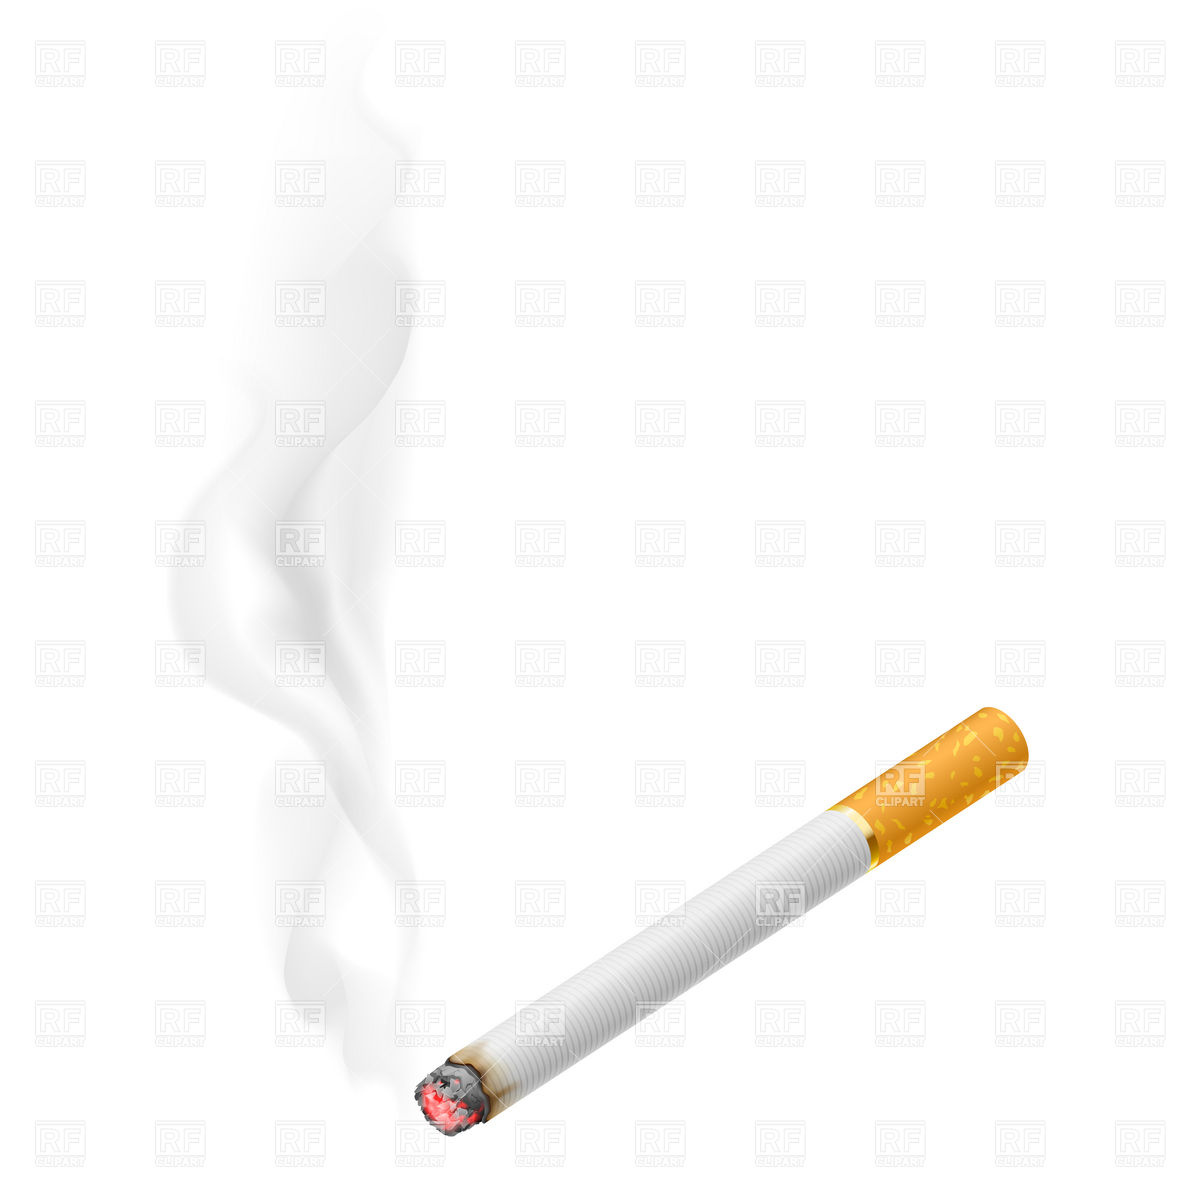 Cigarette Smoke Clipart - Clipart Suggest